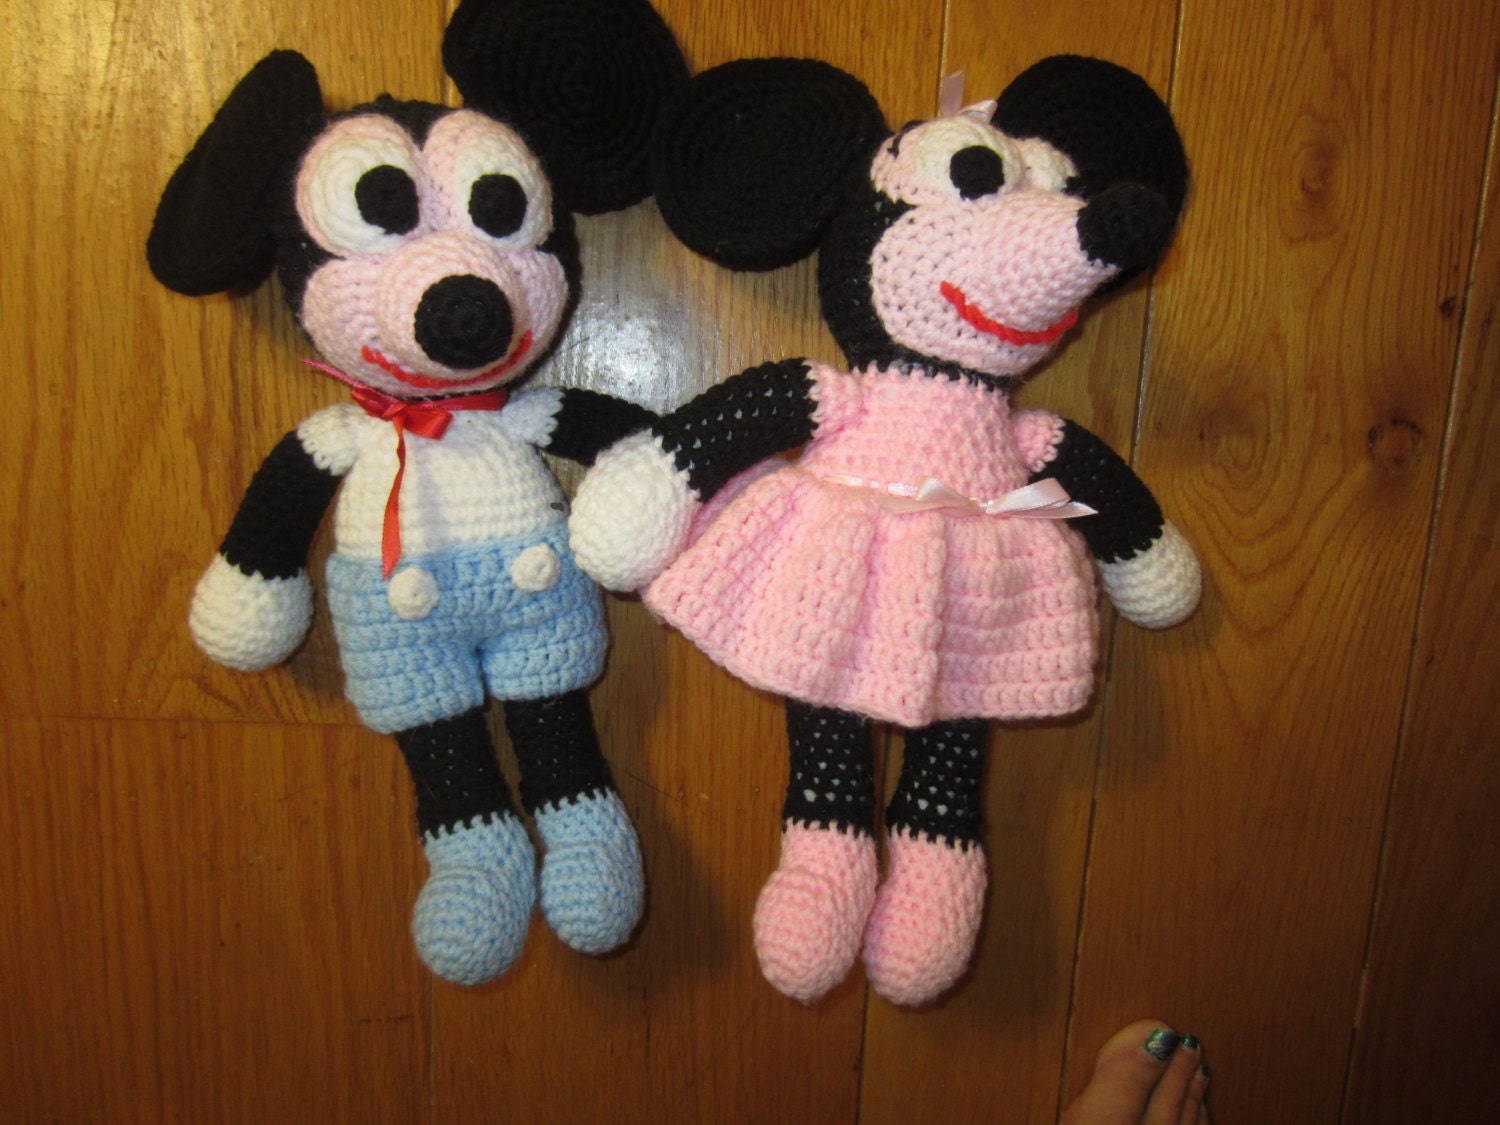 Knitting Patterns For Disney Toys : Vintage Mickey Mouse & Minnie Mouse Hand Crochet by kookykitsch